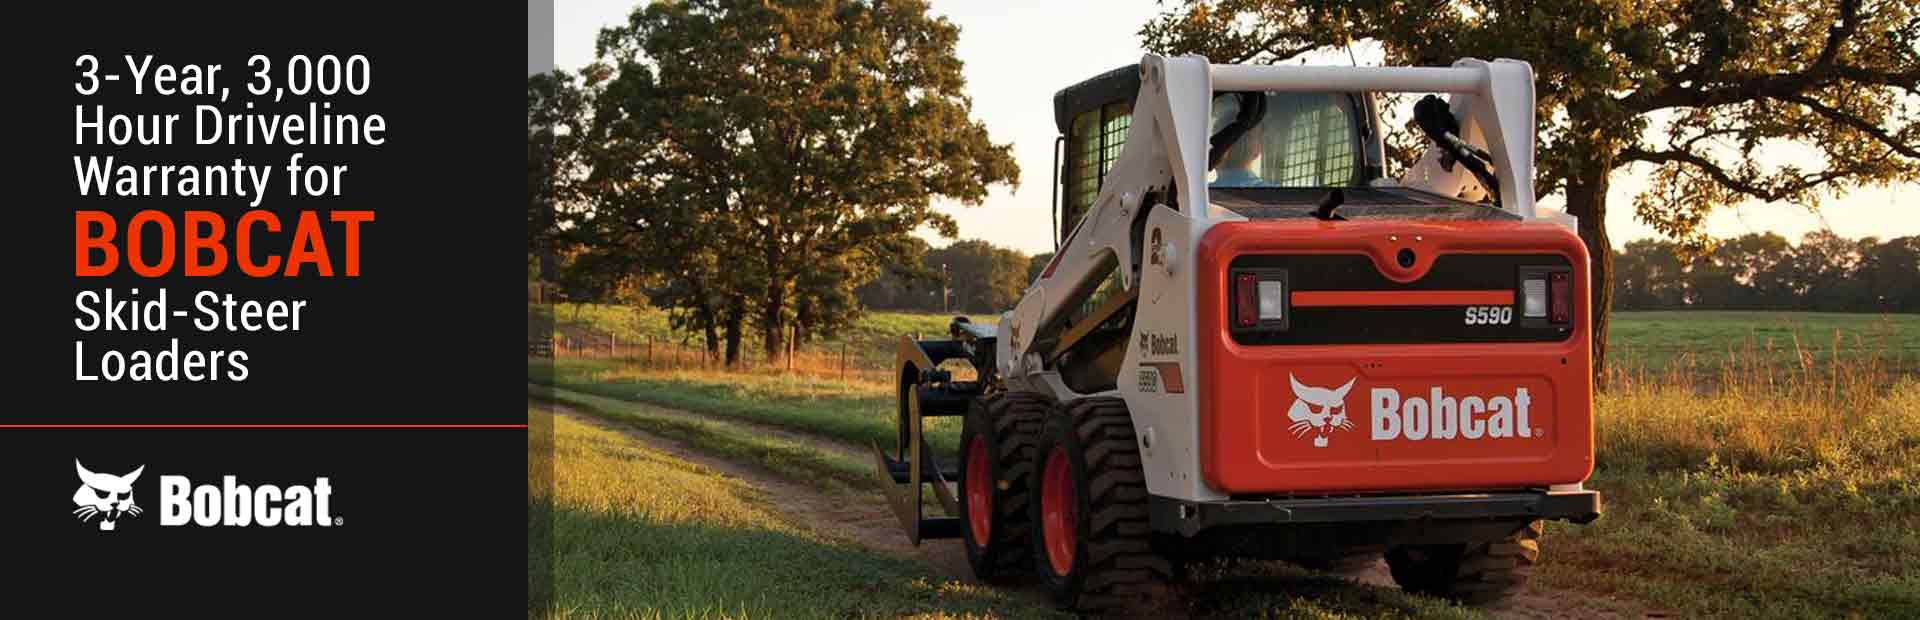 Bobcat: 3Yr 3KHr Driveline Warranty for Skid-Steer Loaders